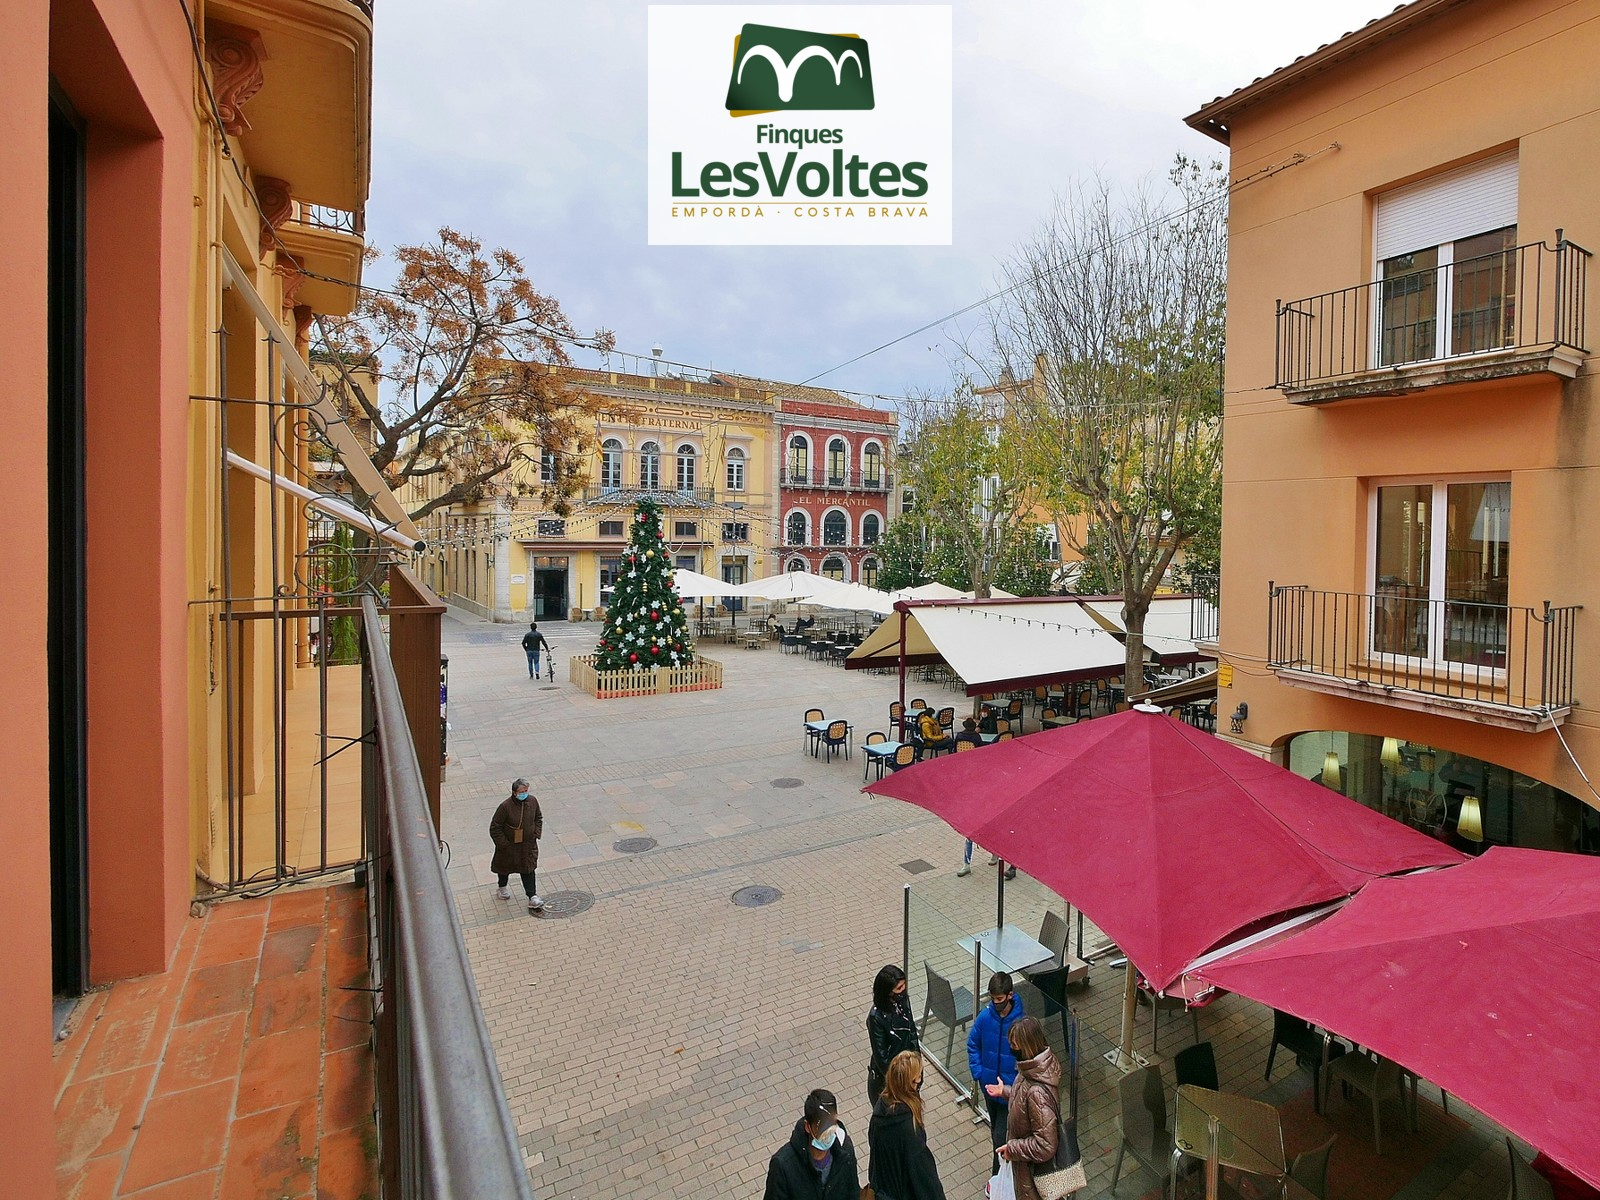 MAGNIFICENT RENOVATED VILLAGE HOUSE WITH CHARM IN THE PEDESTRIAN CENTER OF PALAFRUGELL. FINCA WITH LARGE TERRACE AND FORKLIFT